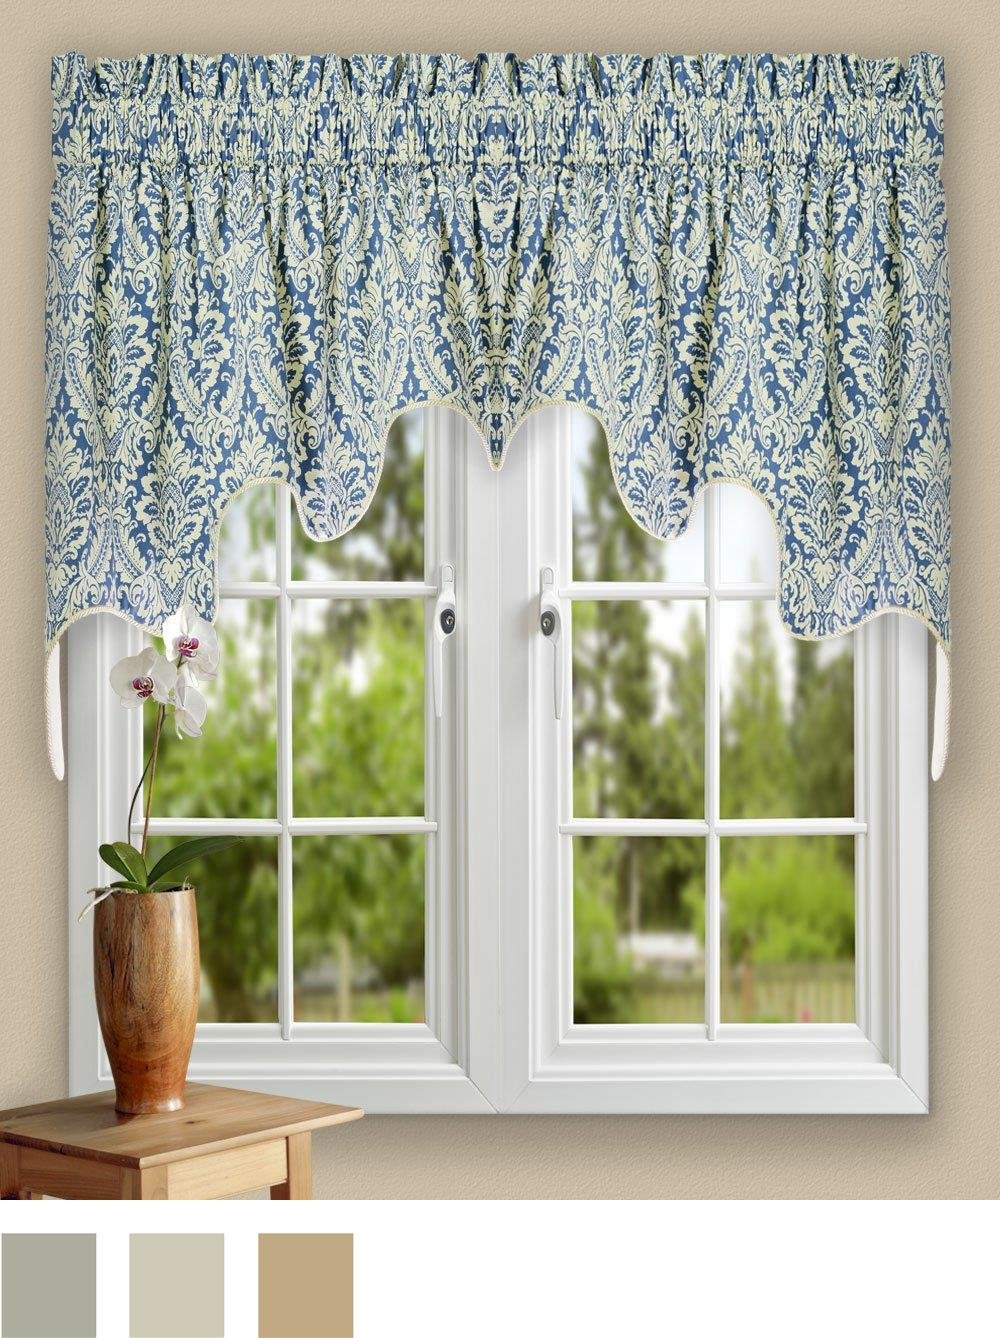 Ellis Curtain Donnington 100-by-30 Inch Lined 2-Piece Duchess Valance, Cornflower